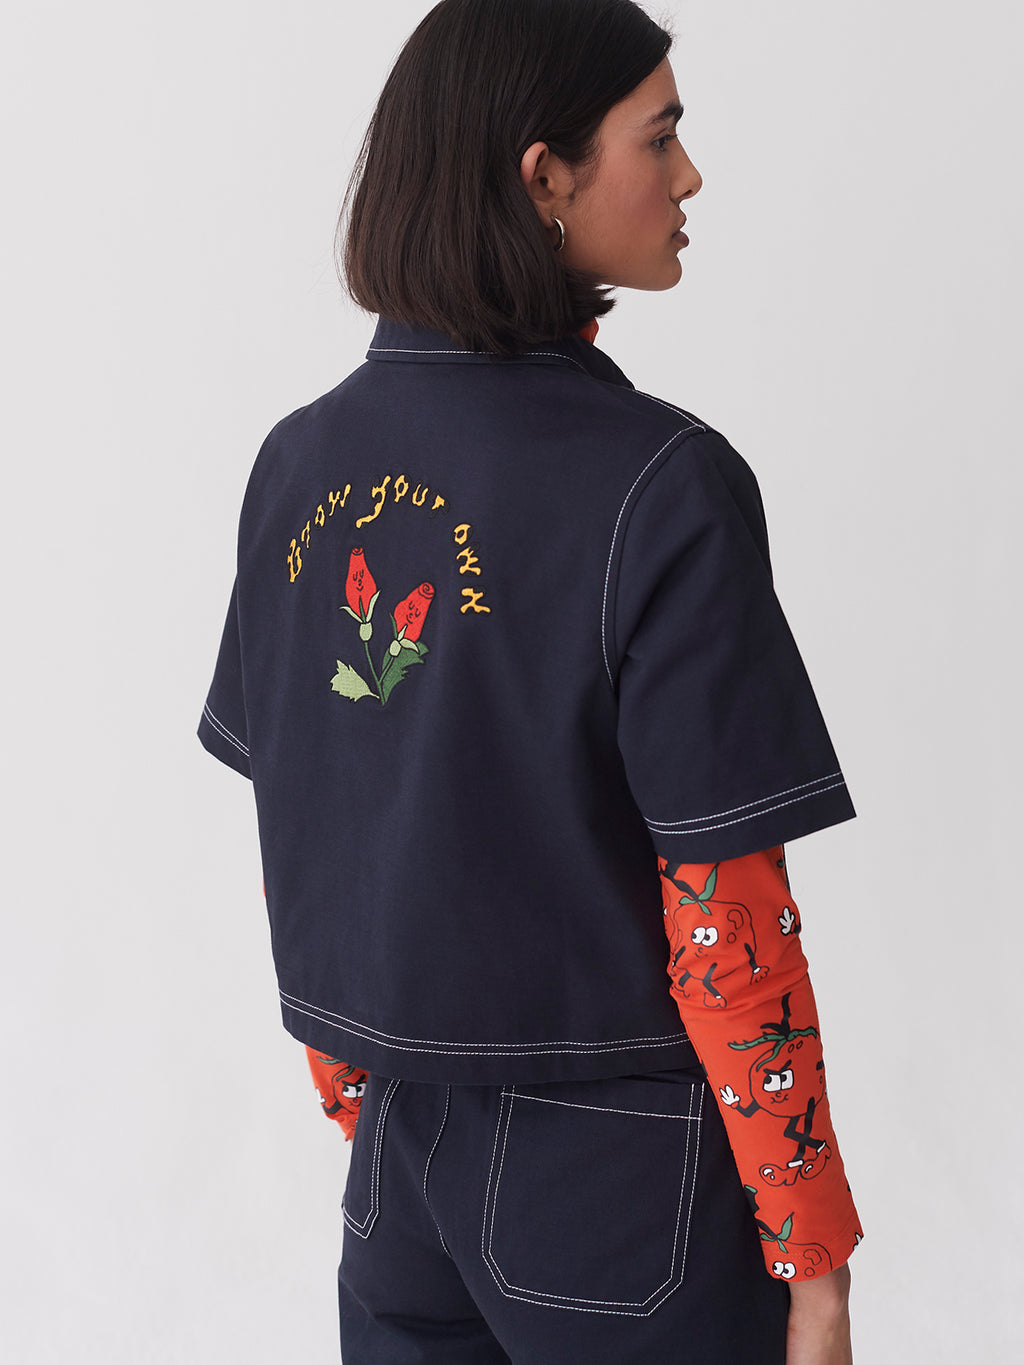 Lazy Oaf Grow Your Own Roses Zip Shirt